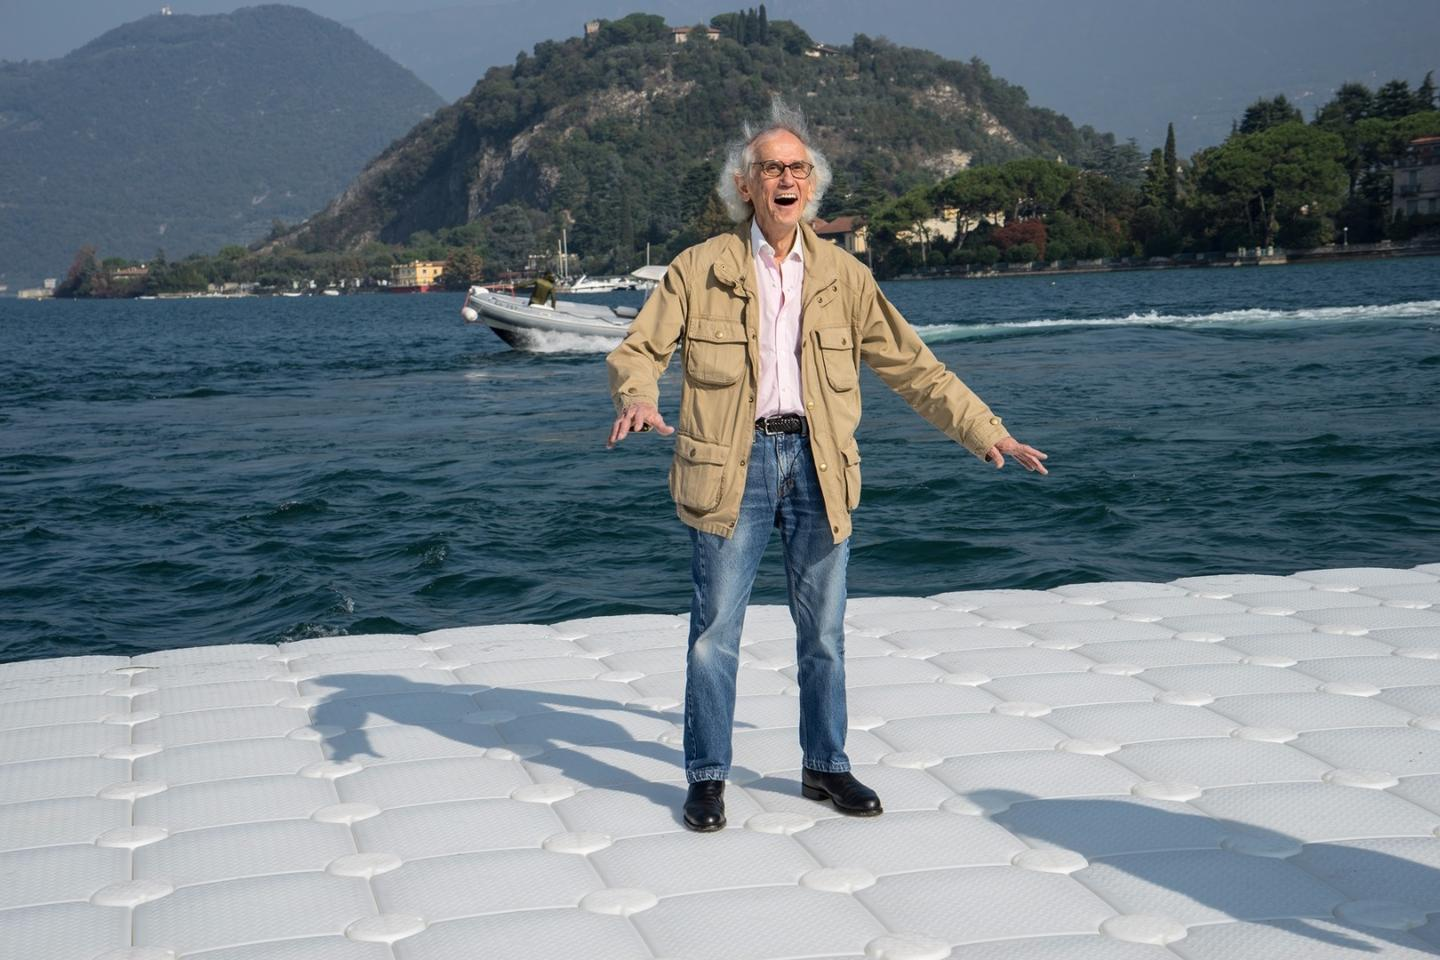 The Floating Piers was designed by artists Christo (pictured) and Jeanne-Claude